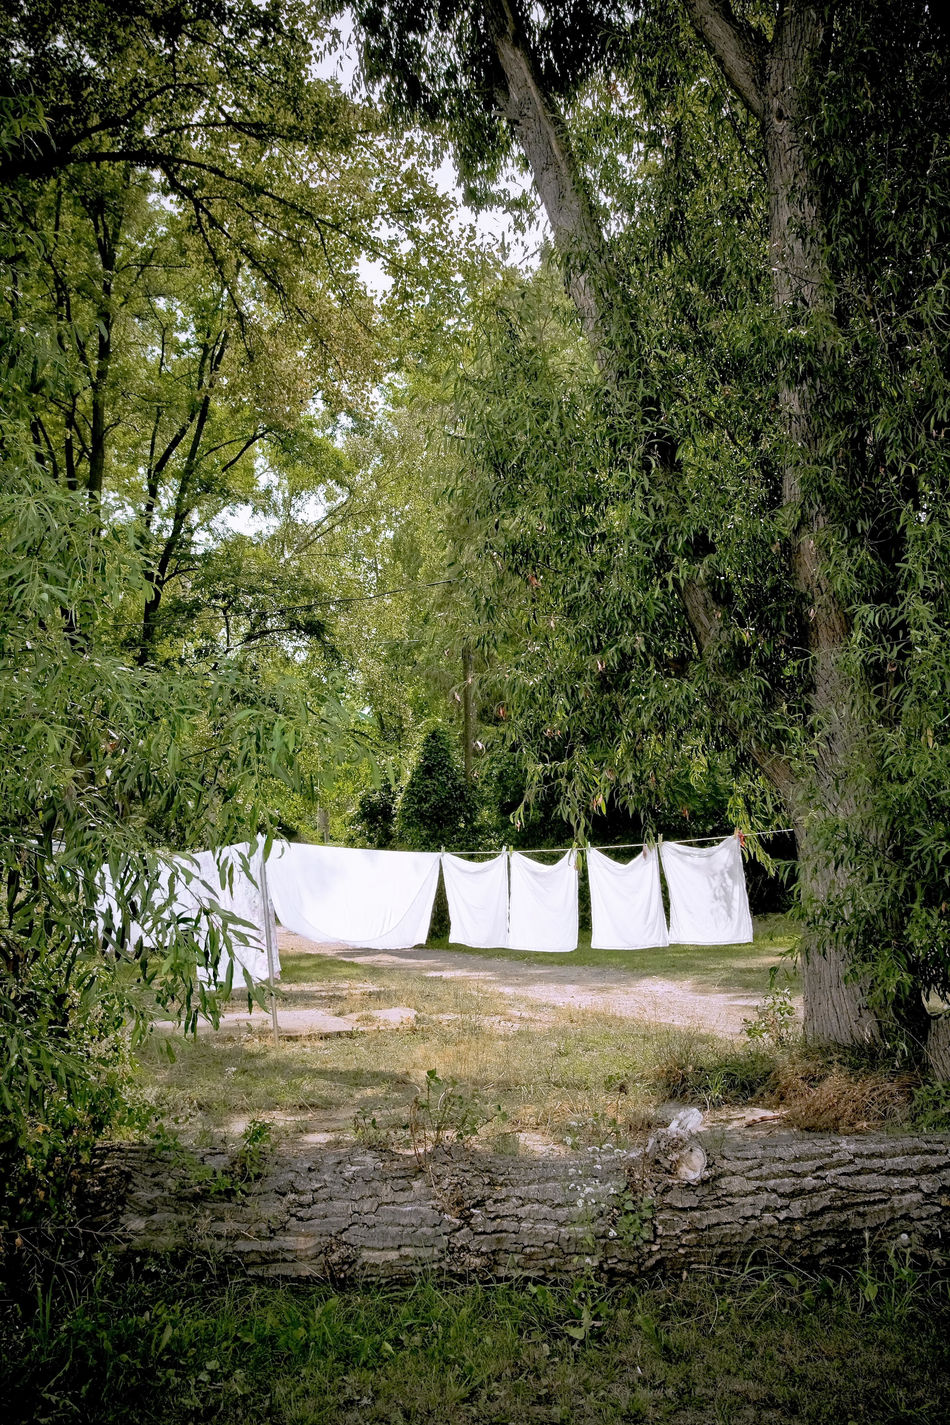 White Laundry Absence Bench Branch Empty Forest Grass Green Color Growth Laundry Laundry Day Laundry Line Outdoors Plant Tranquility Tree Trunk White Laundry